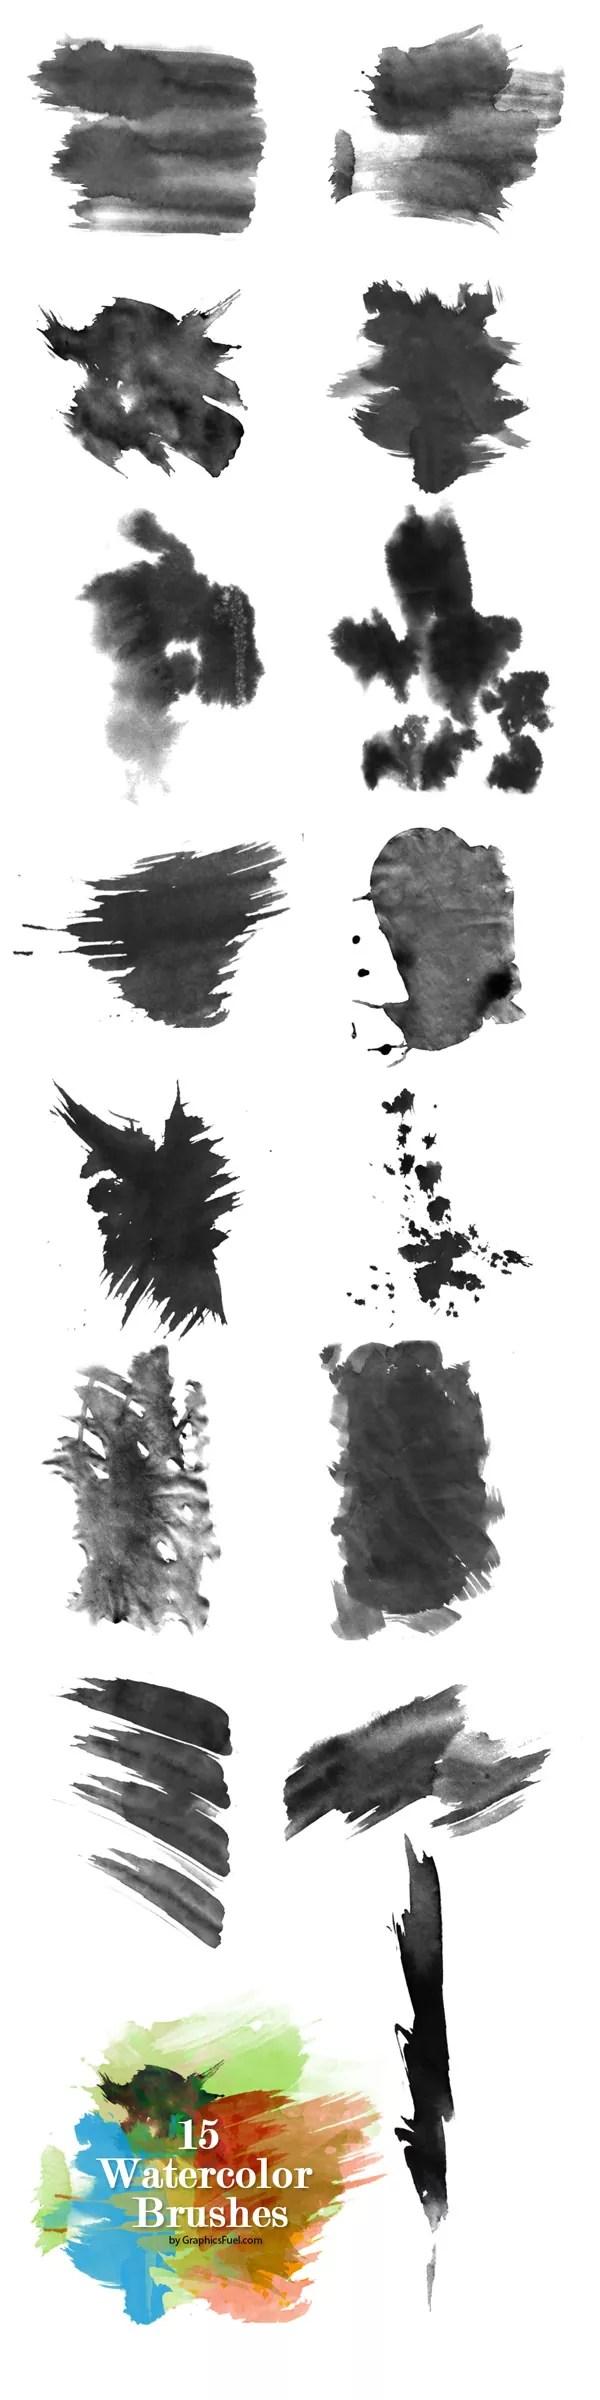 watercolor brushes preview - Free Ink and Watercolor Brushes for Photoshop